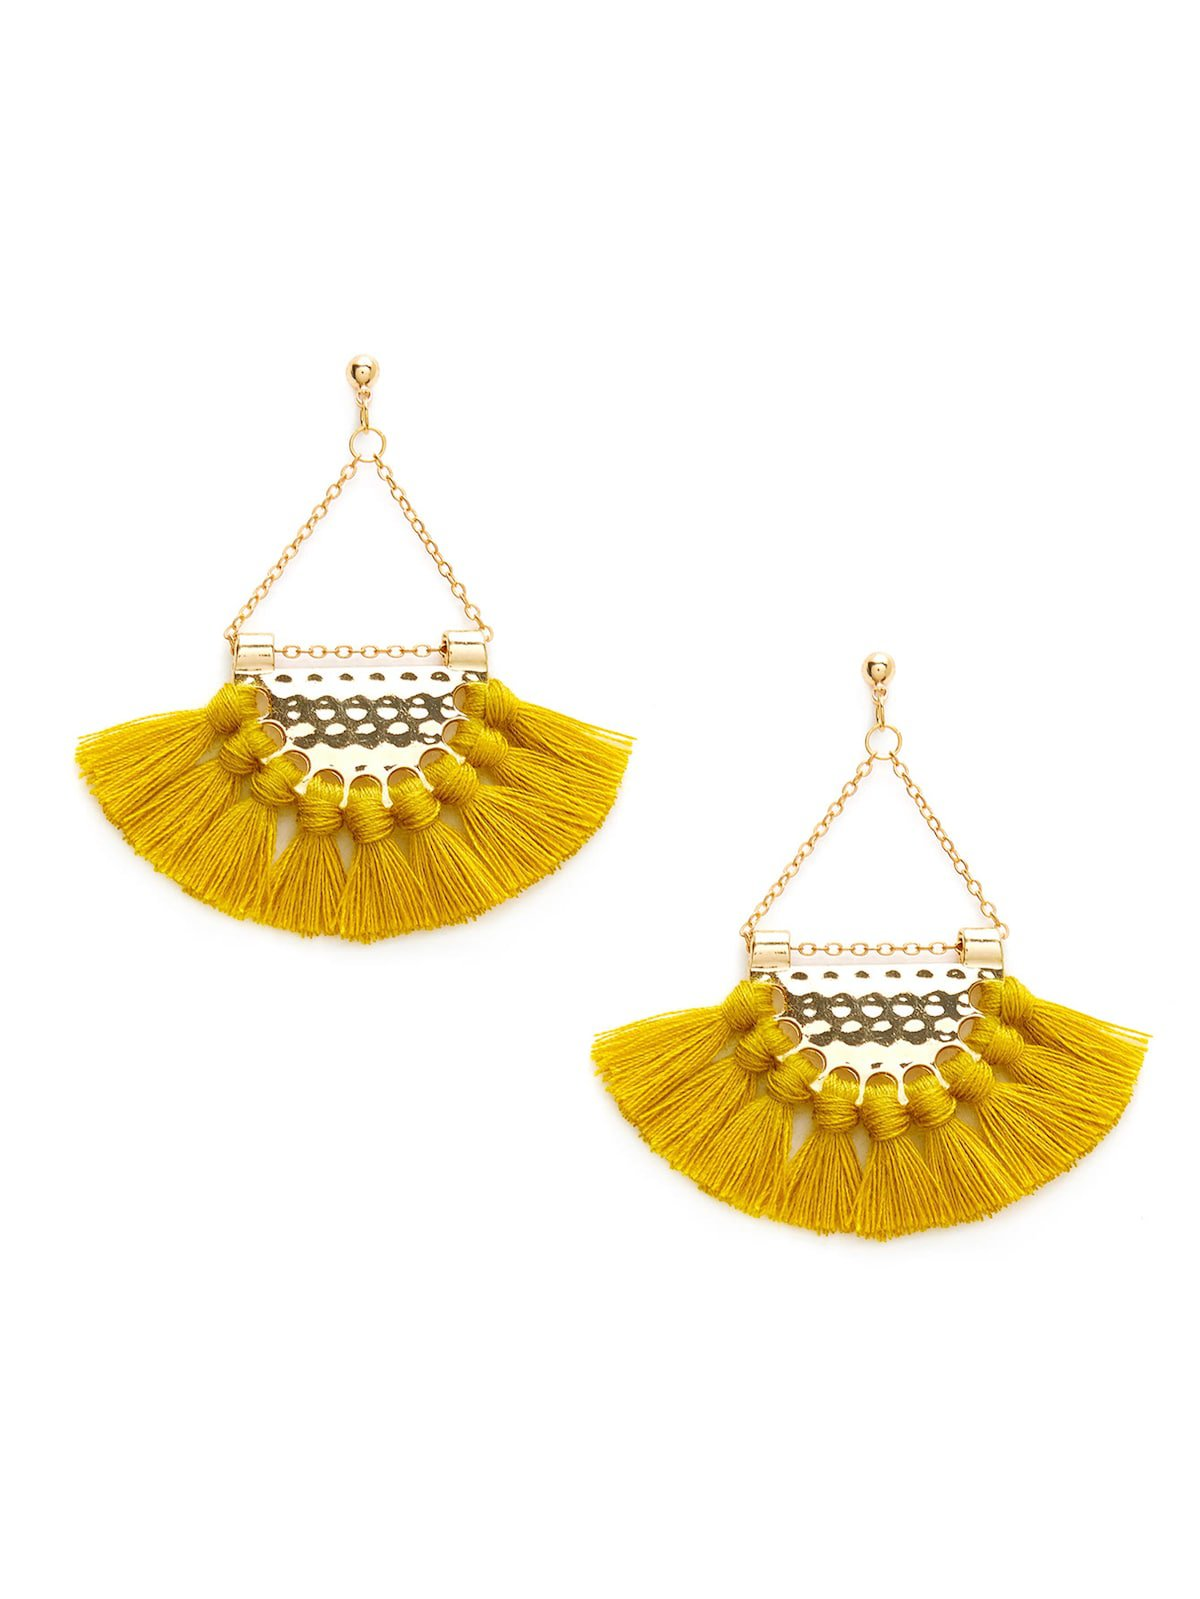 Mini Tassel Fan Shaped Earrings | ROMWE